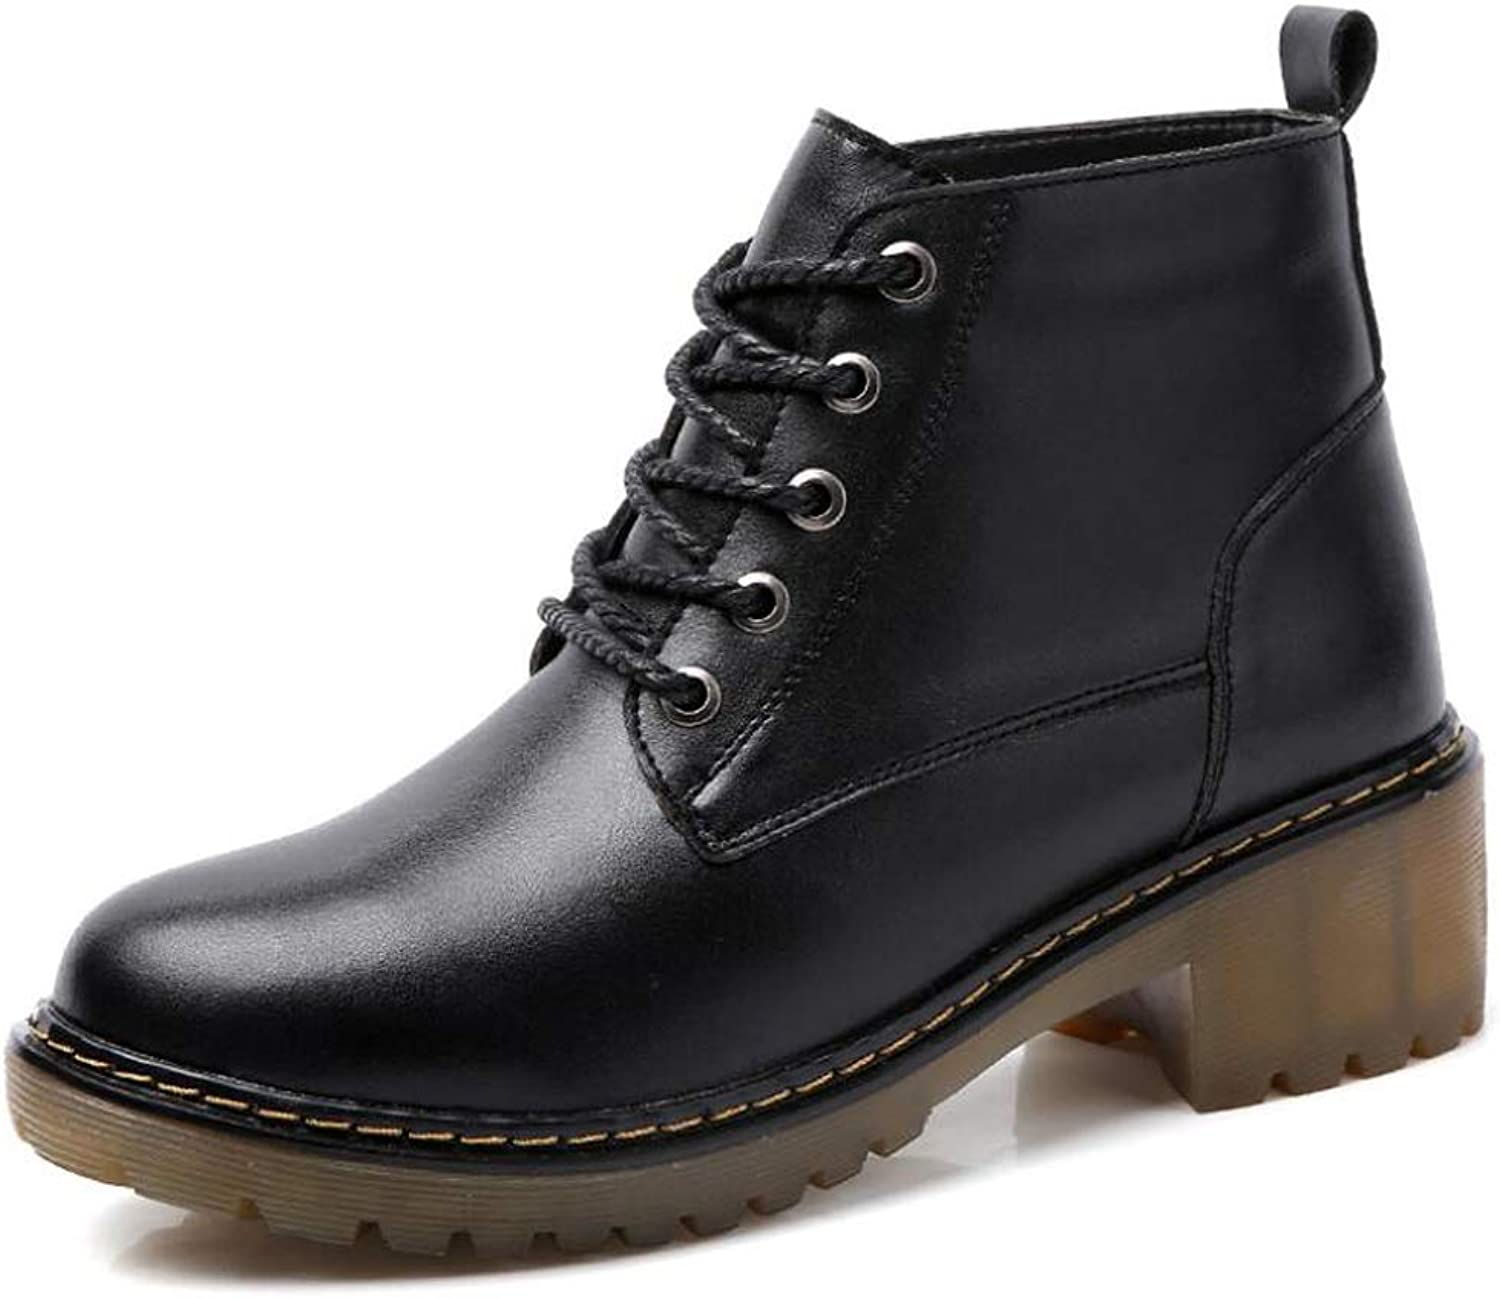 Women's Martin Boots Casual Thick-Soled Women's Boots Fashion Booties